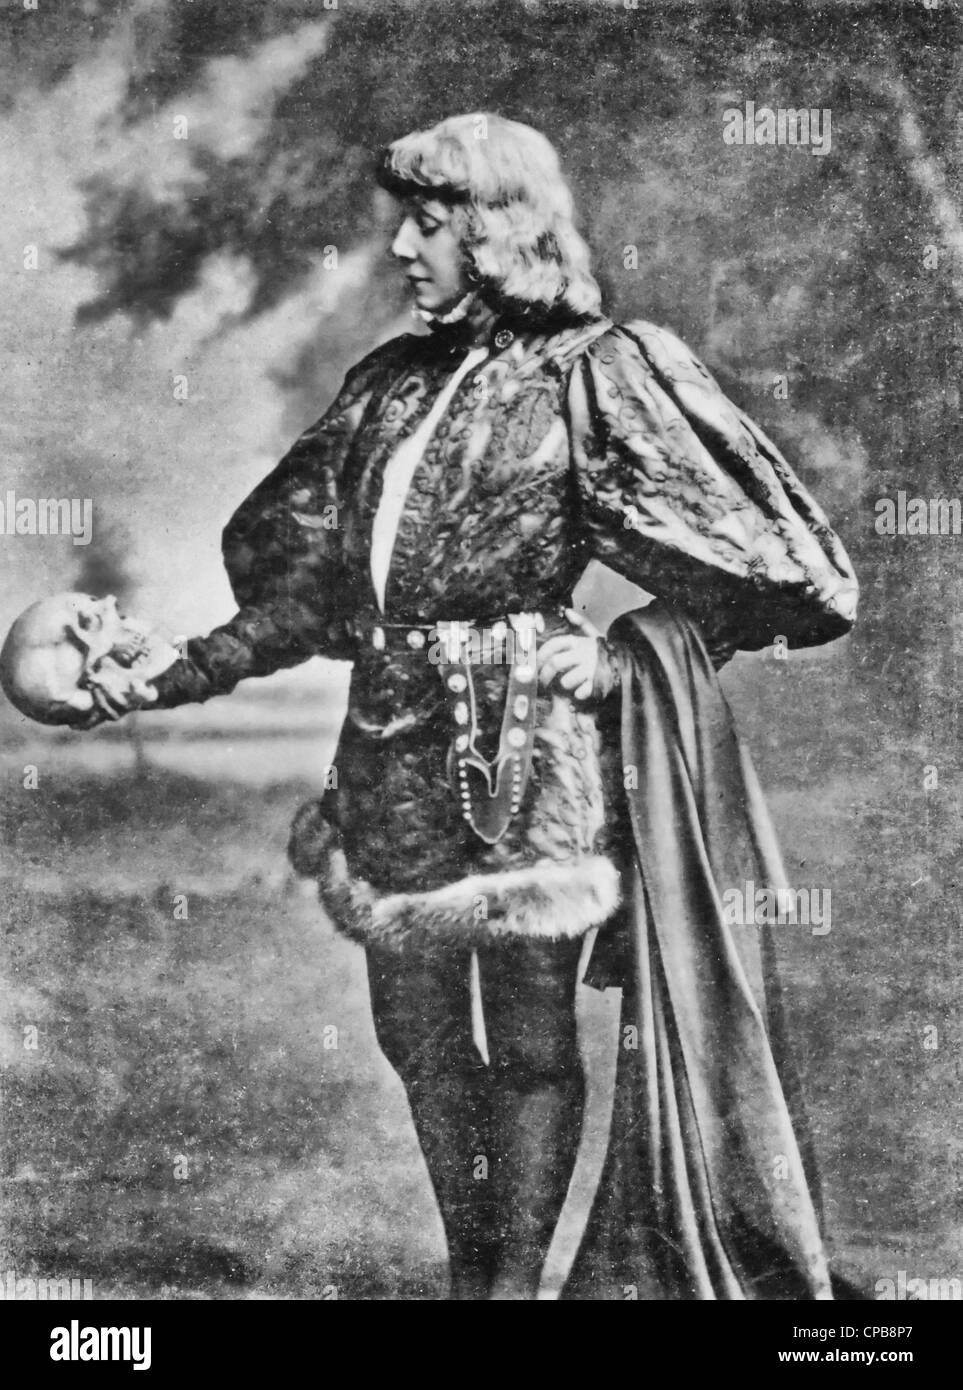 Sarah Bernhardt as Hamlet, full length portrait, standing, facing left, holding and looking at skull, circa 1900. - Stock Image